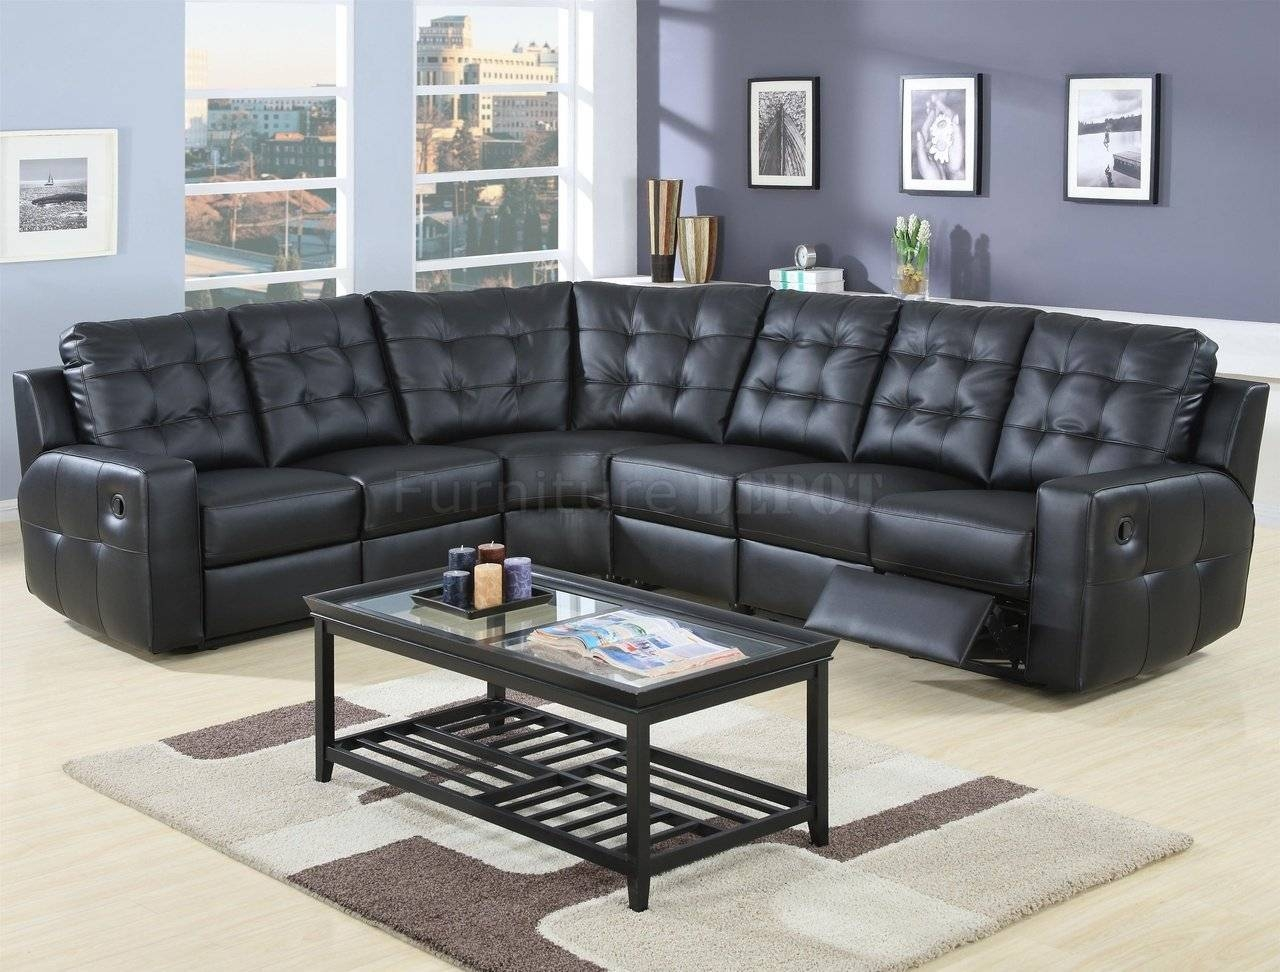 Furniture: Incredible Style Sectional Reclining Sofas For Your for Curved Recliner Sofa (Image 13 of 30)